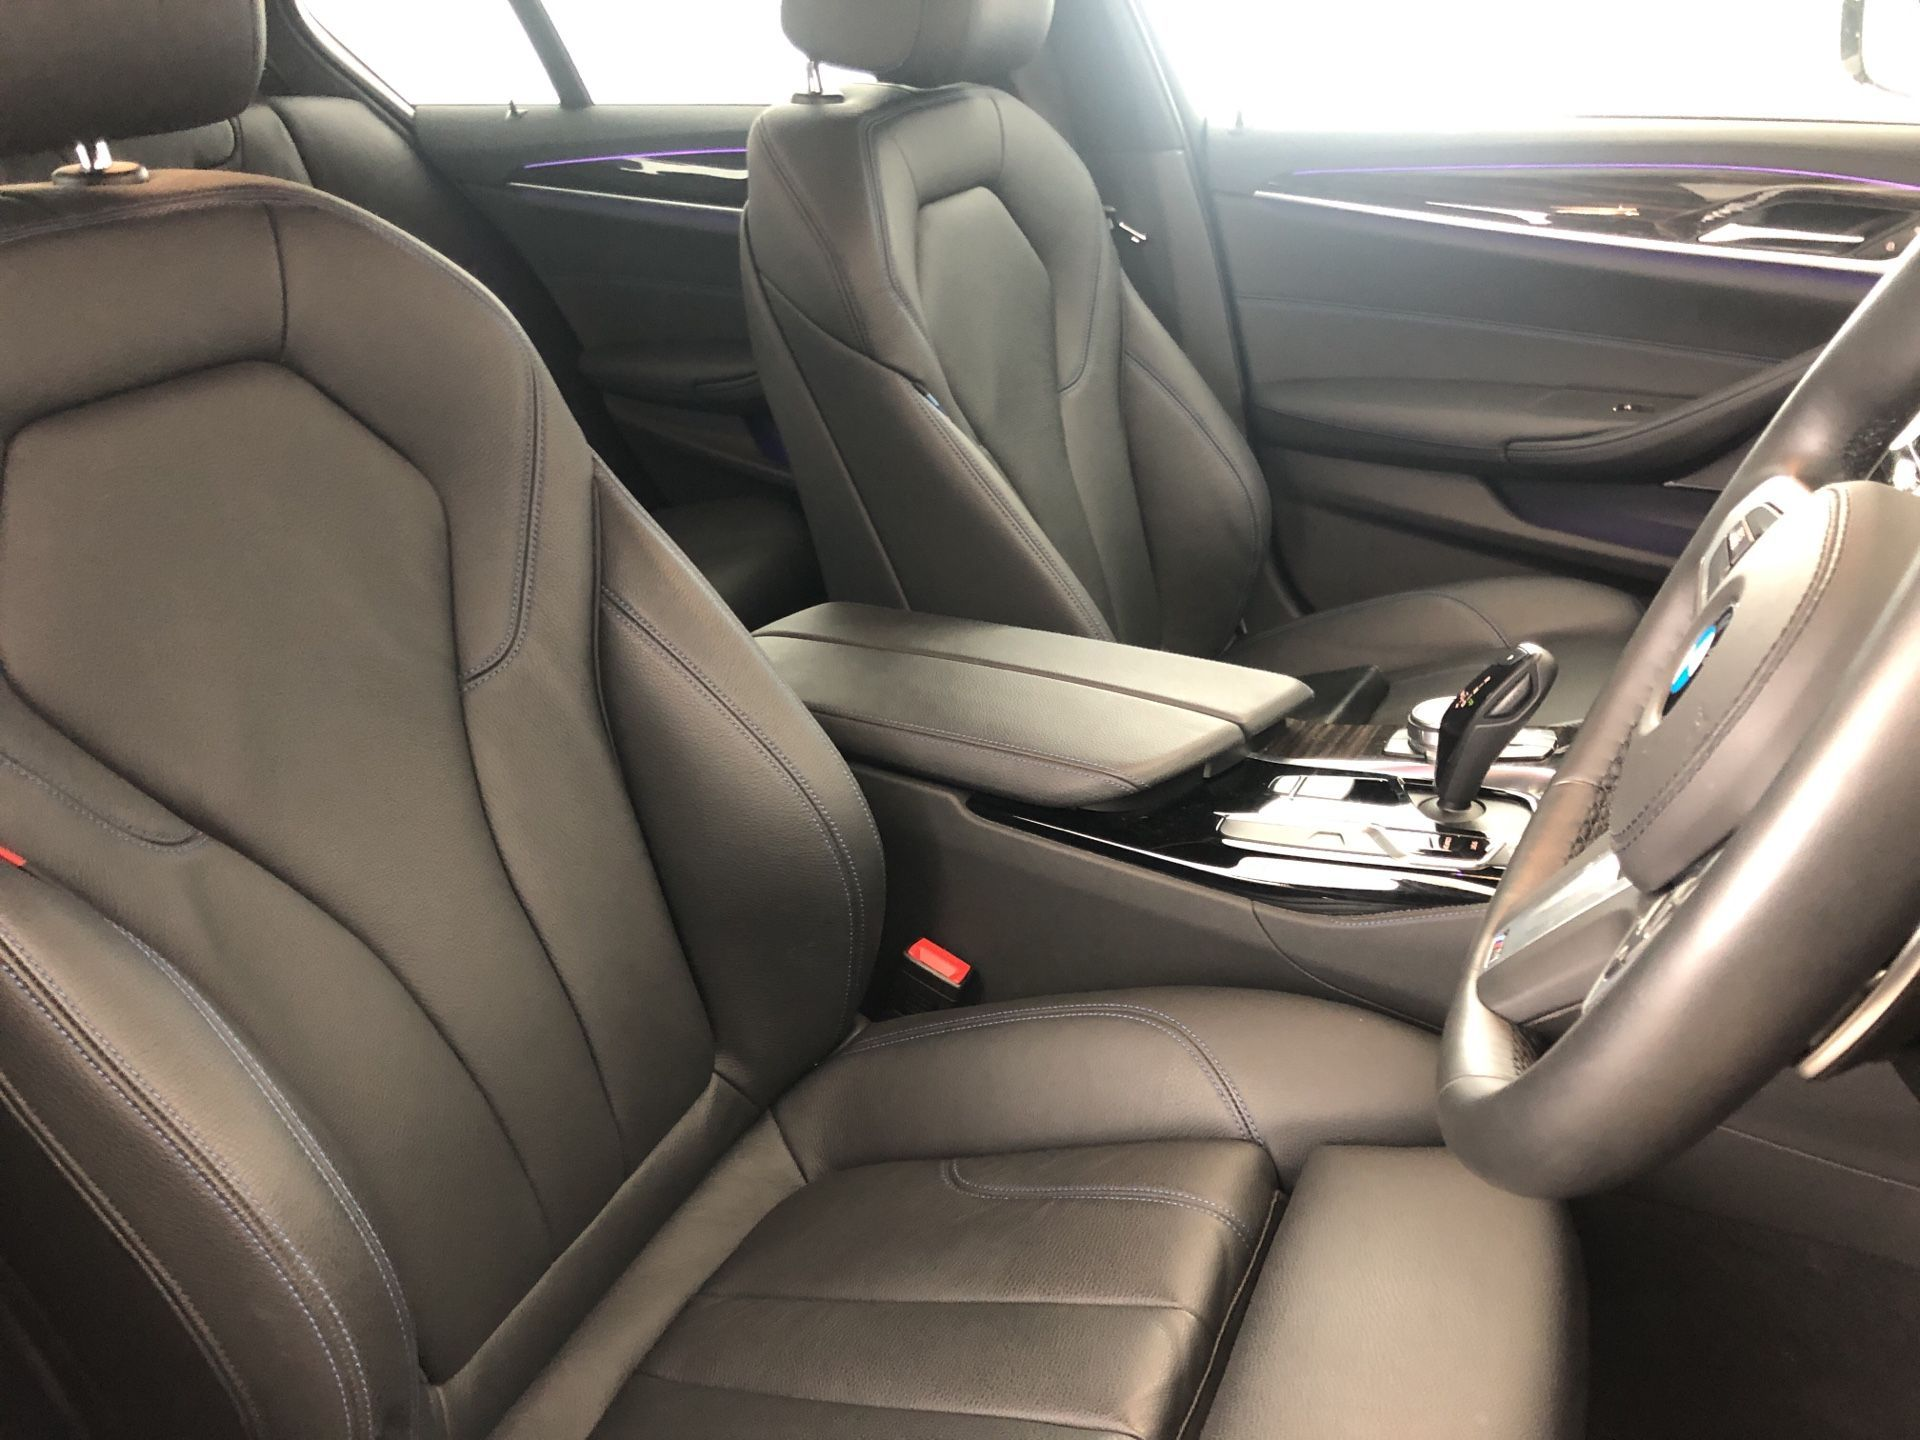 Image 8 - BMW 530e M Sport iPerformance Saloon (YJ68WUP)